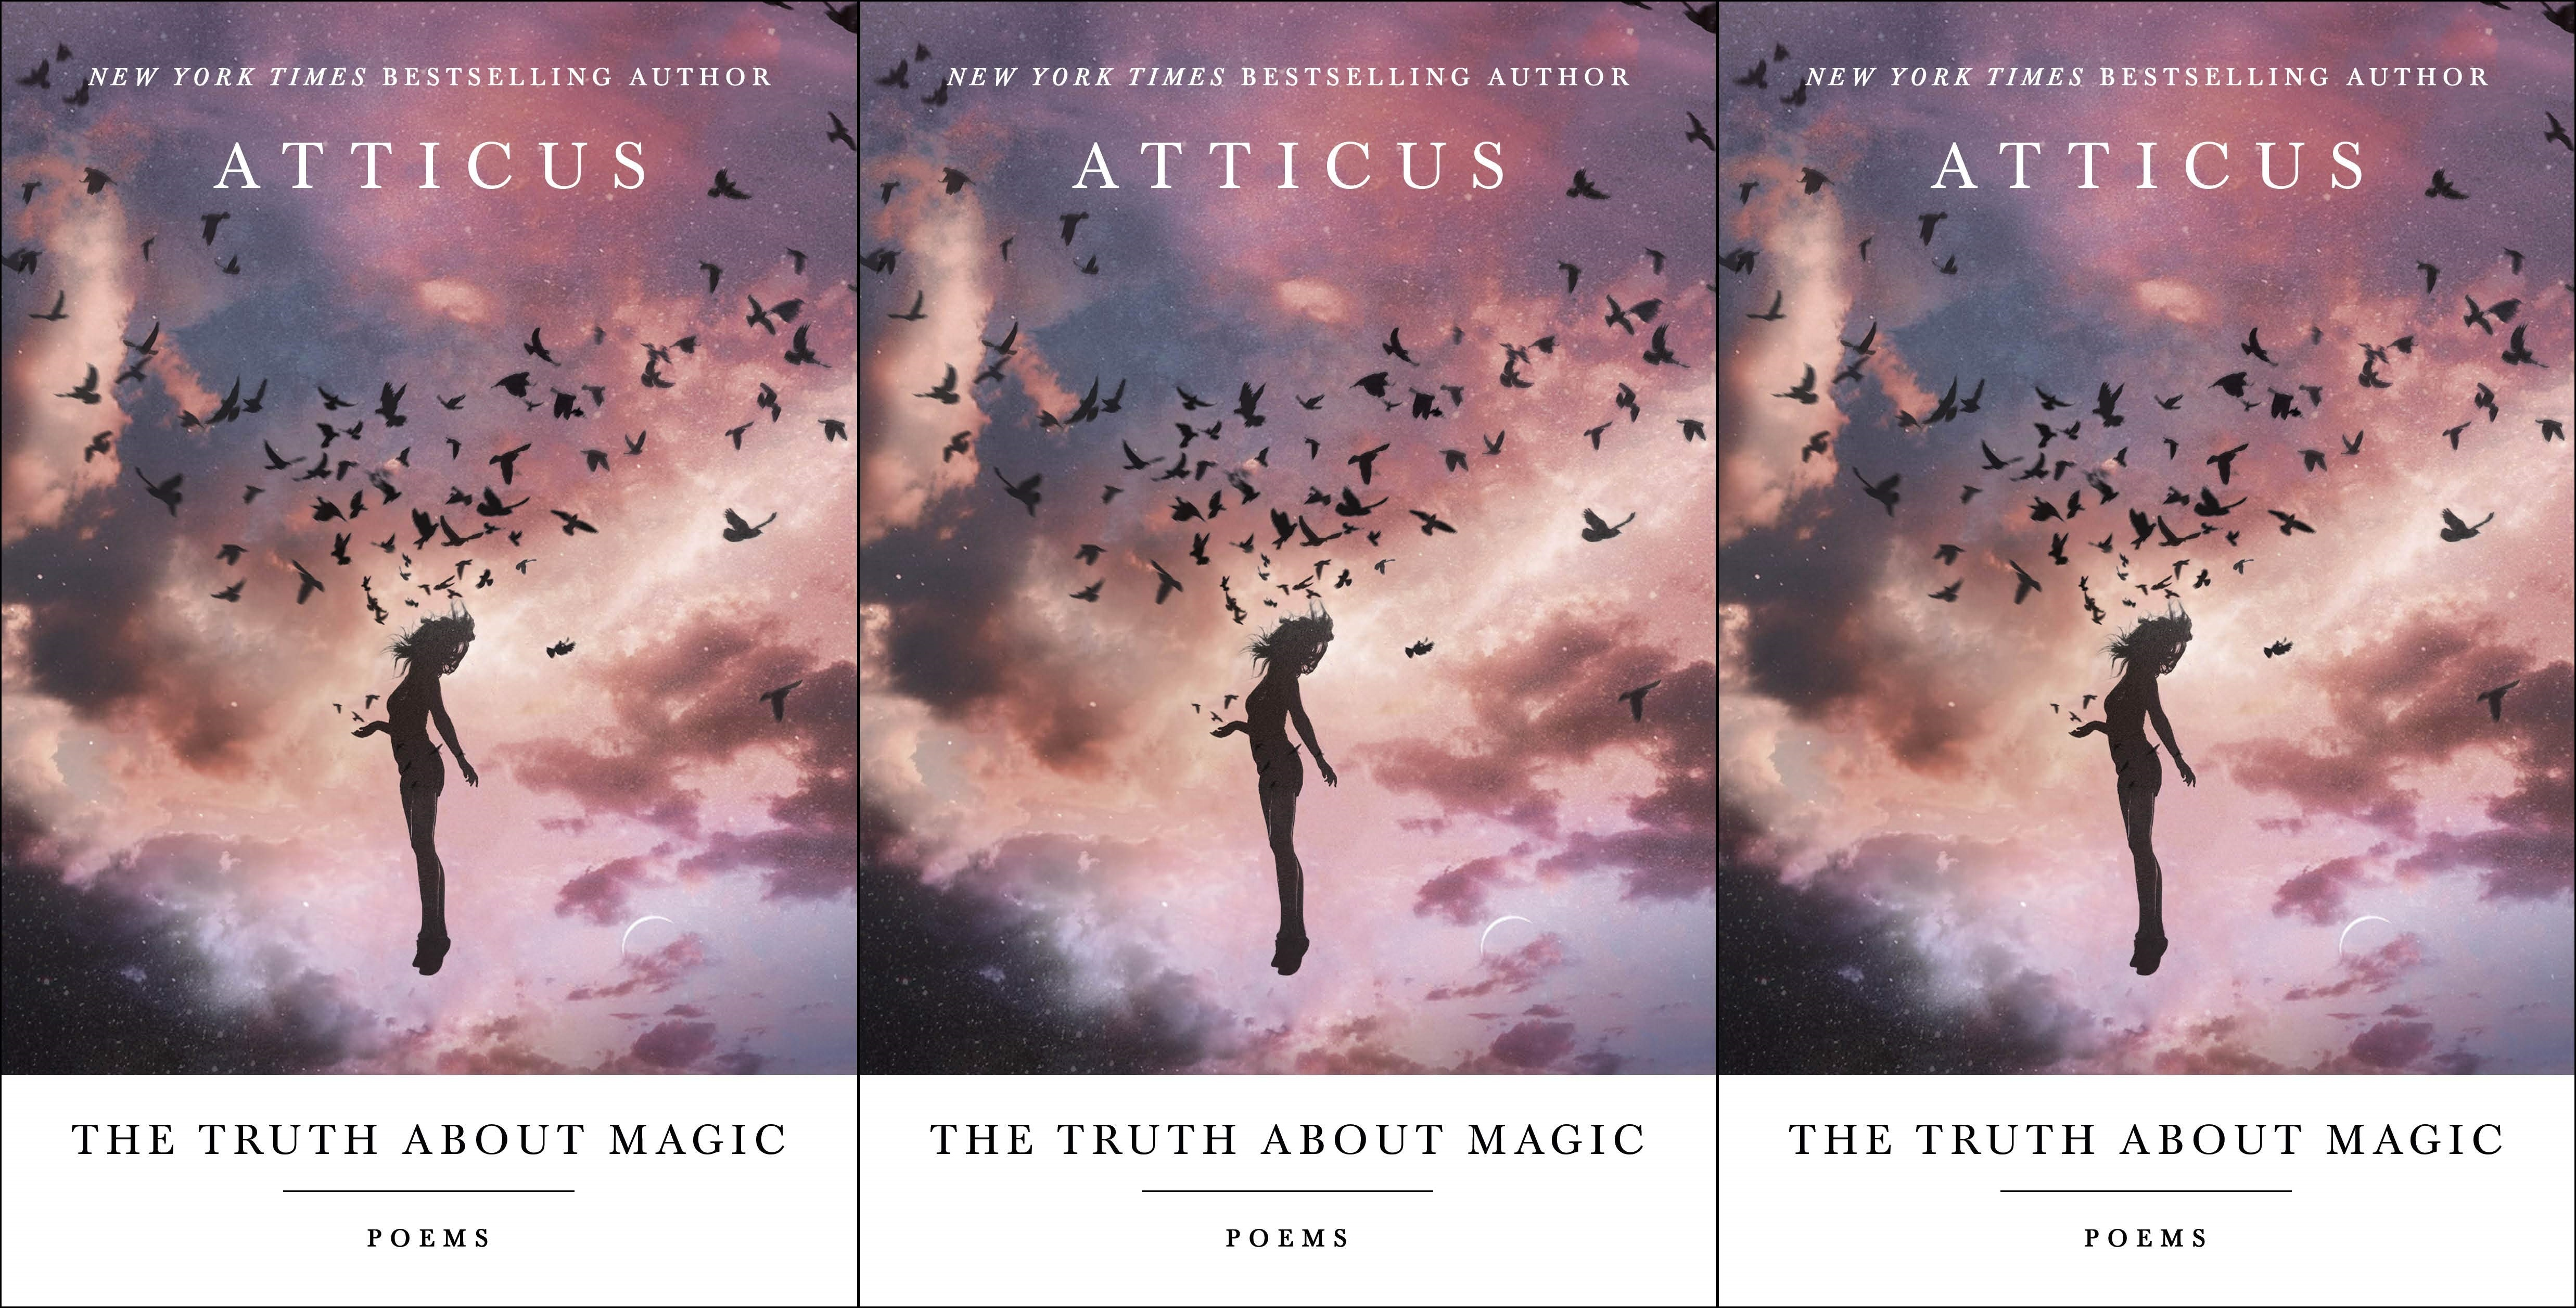 upcoming poetry collections, the truth about magic by atticus, books